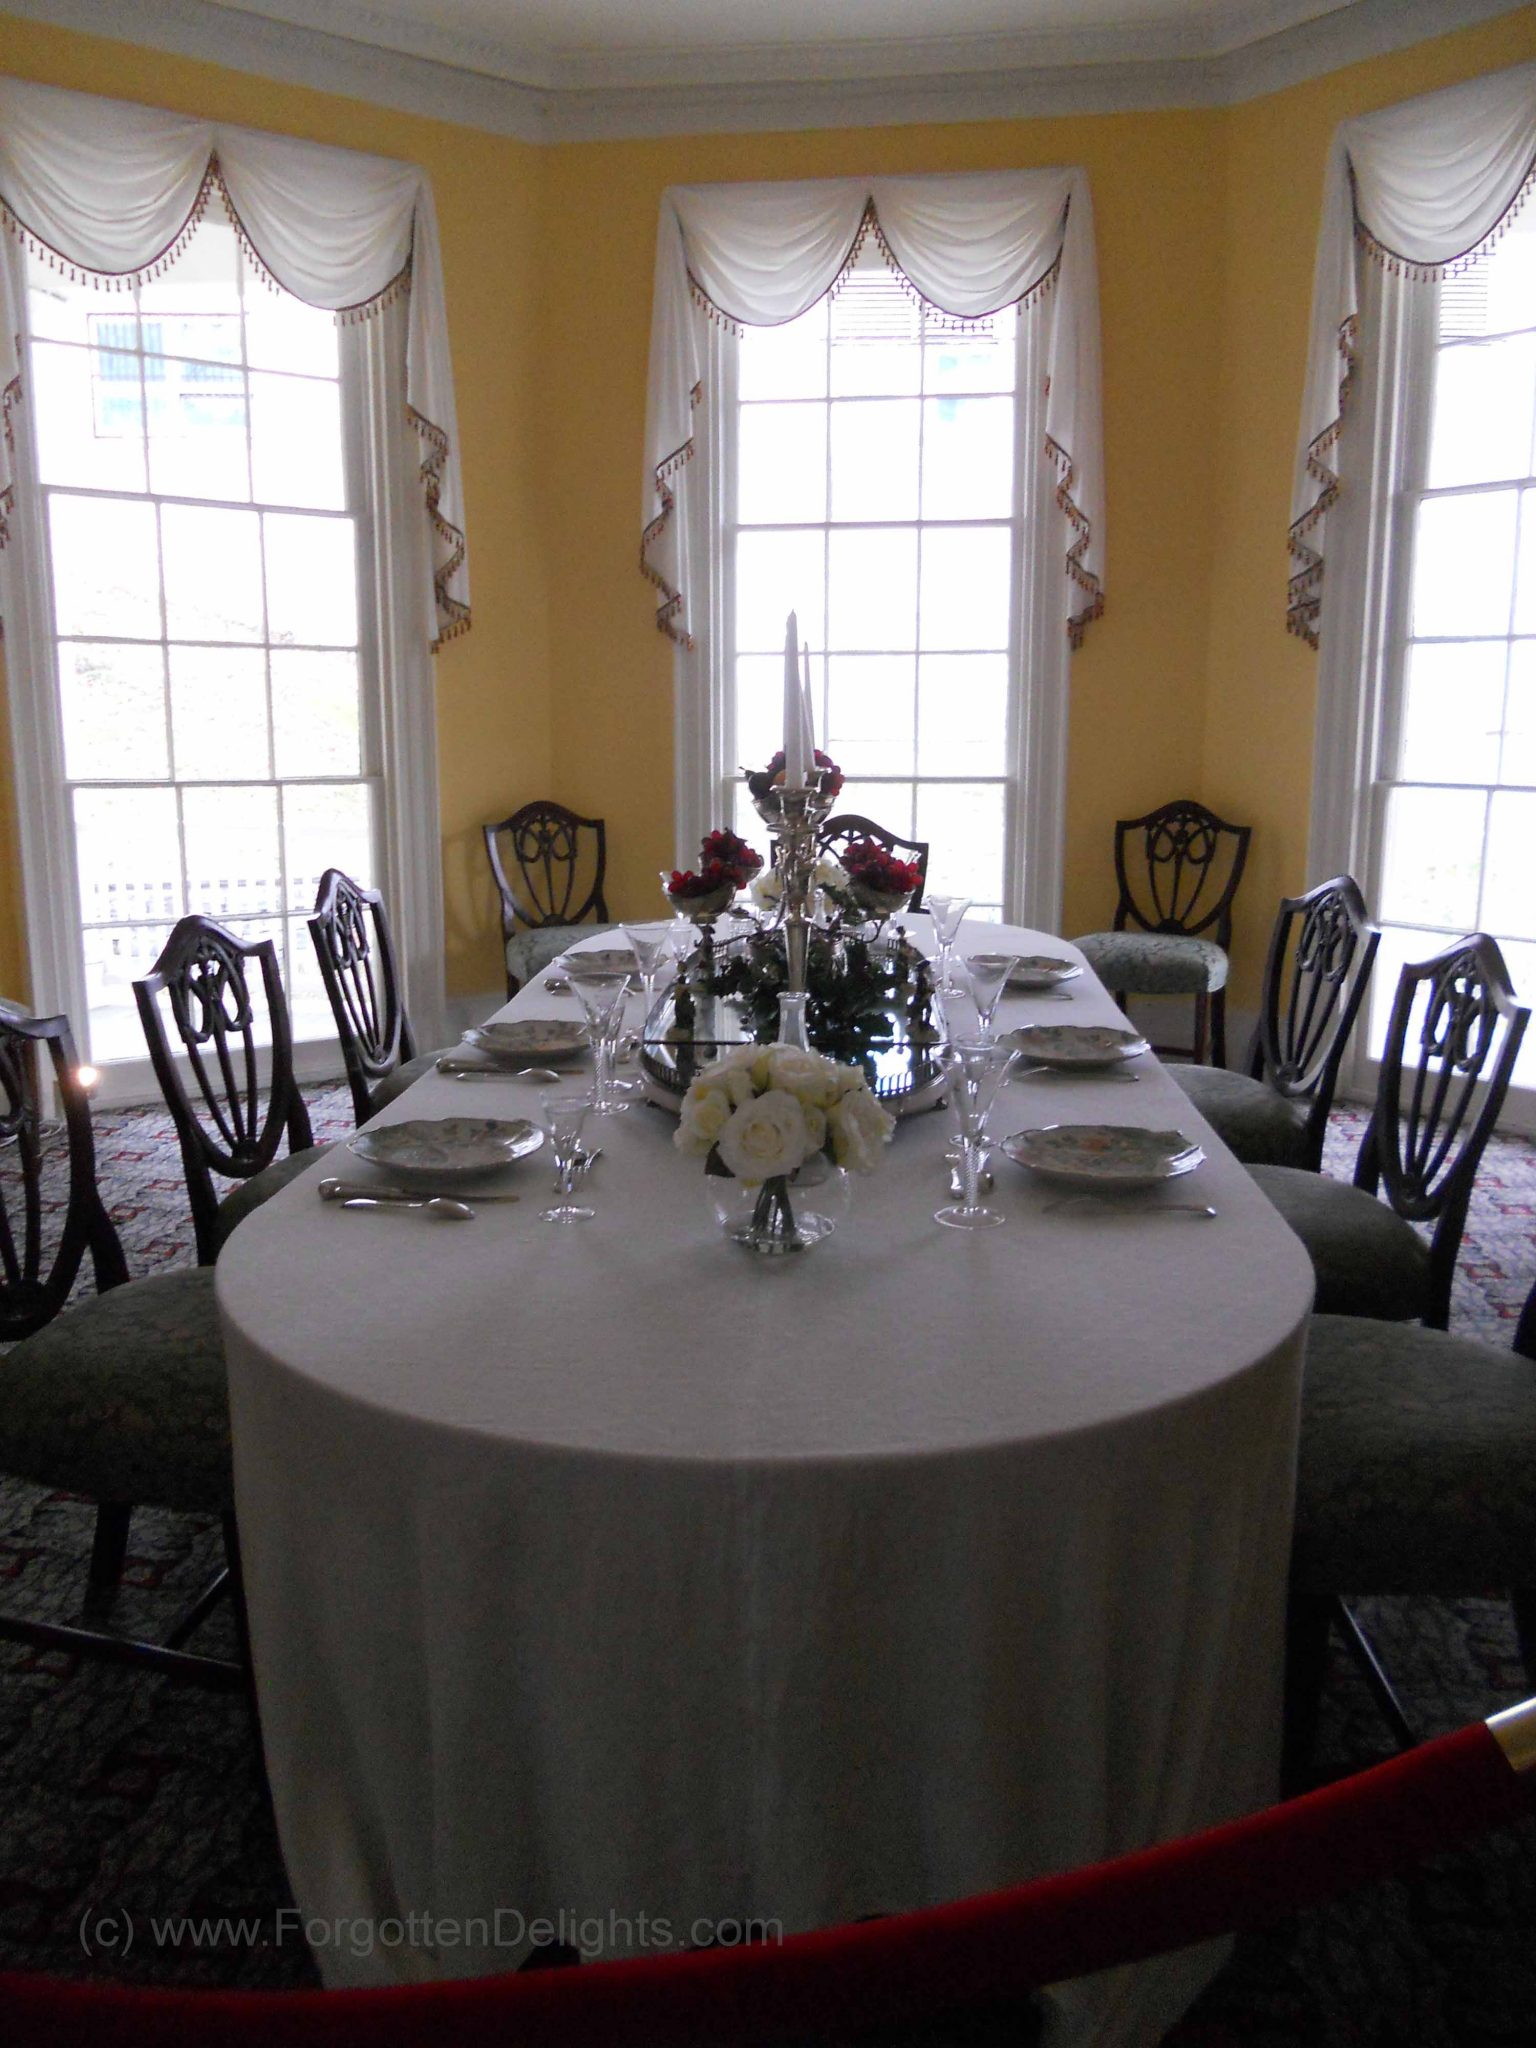 Dining Room At The Grange Photo C 2014 Dianne L Durante